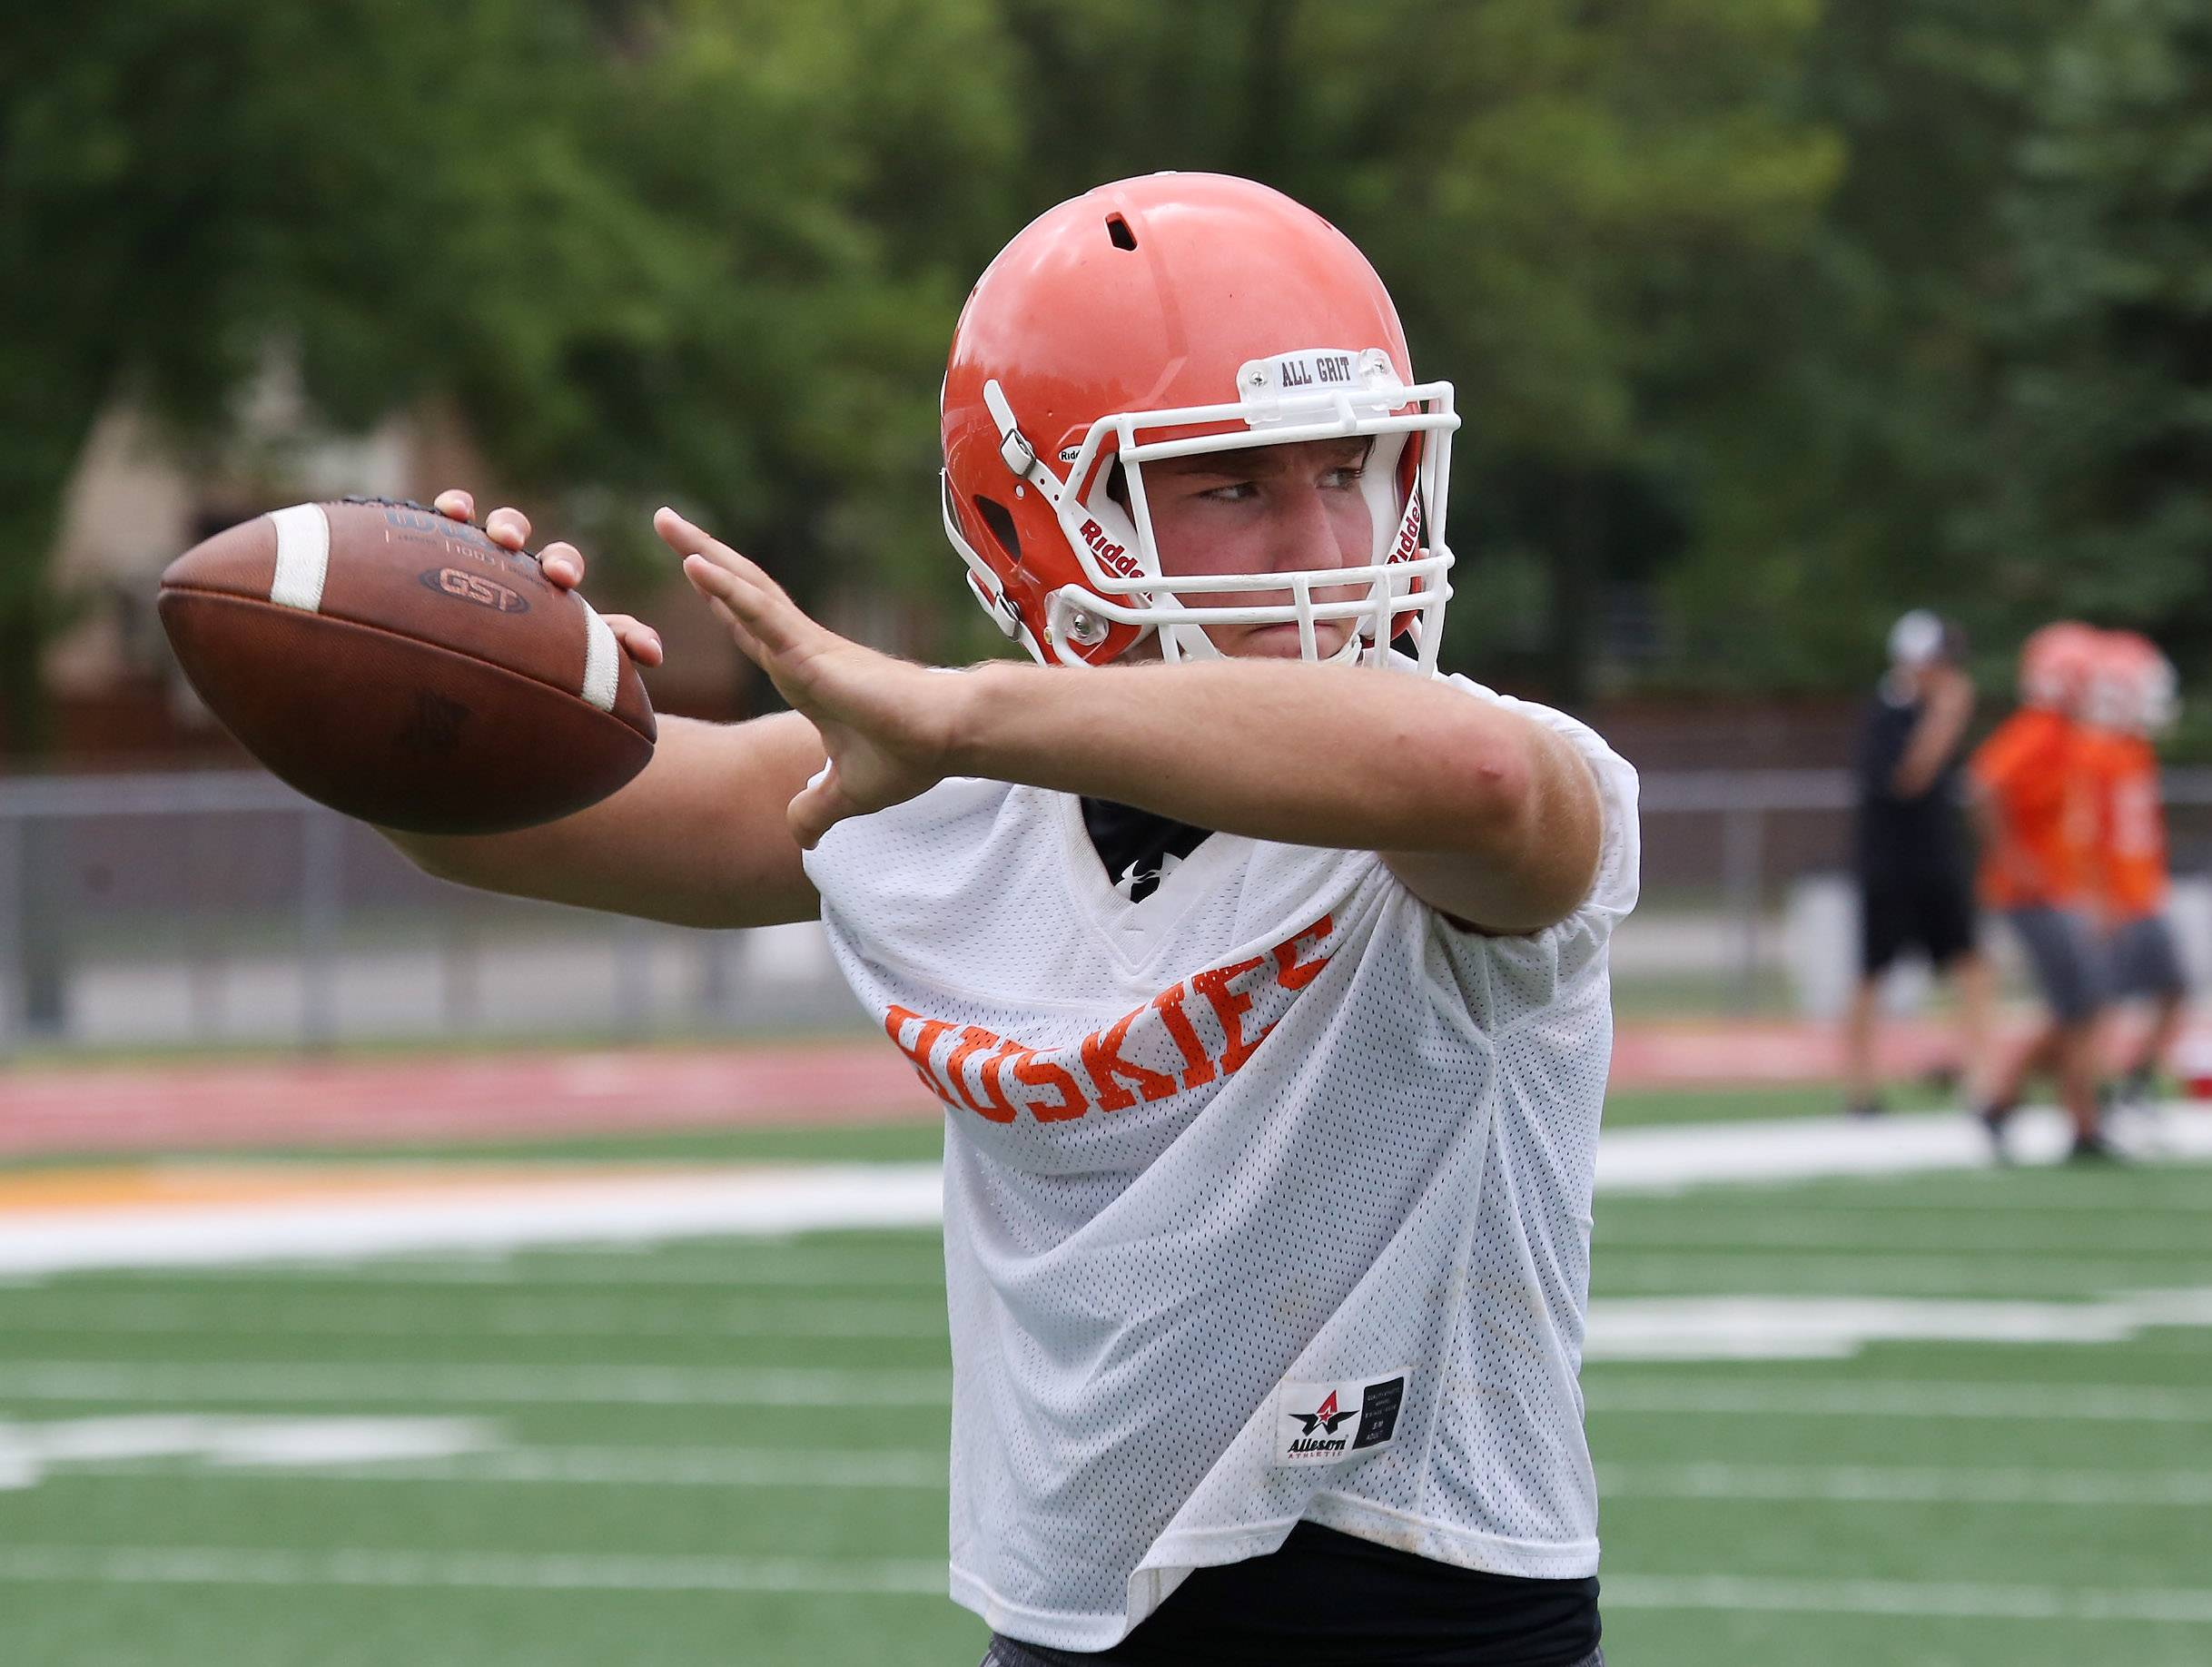 Quarterback Joe Caputo throws the ball during the first day of football practice at Hersey High School on Monday.